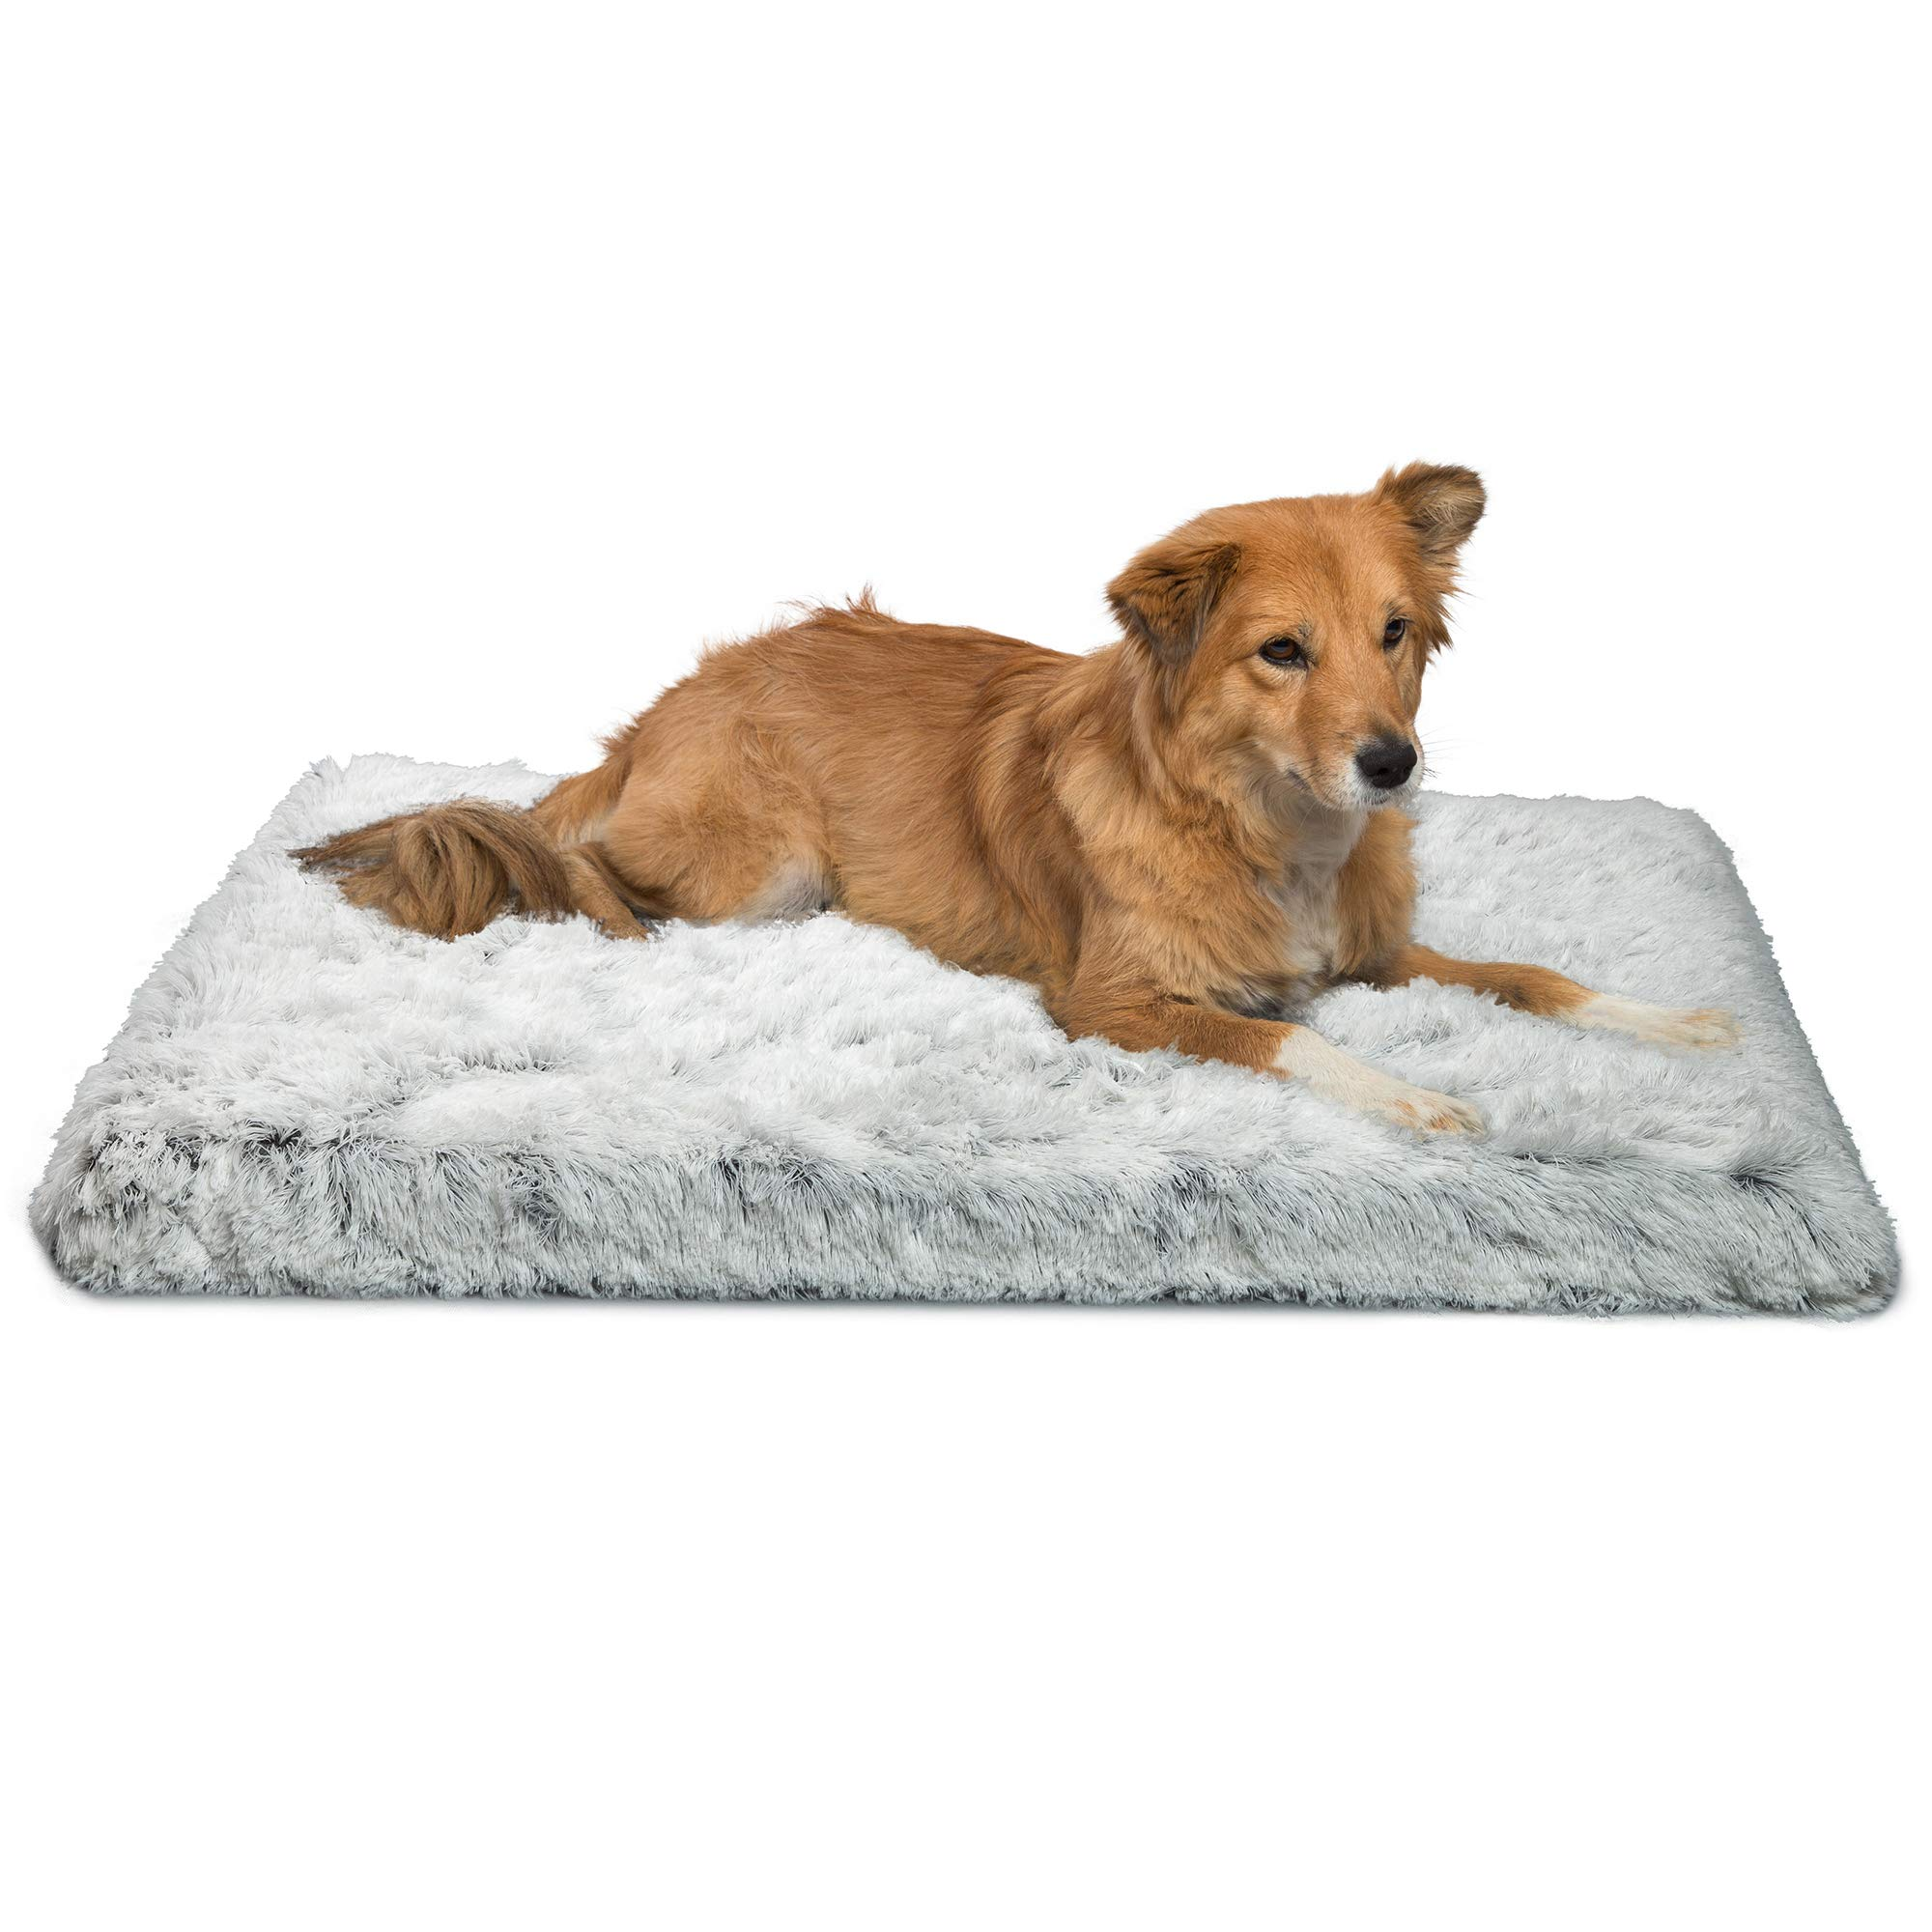 Best Friends by Sheri Orthopedic Dog Bed - Vegan Faux Fur Cushion Supports Joints, Soothes Your Pet, Improves Sleep - Self-Warming w/Zippered Cover, Machine Washable - 27x36 in Frost